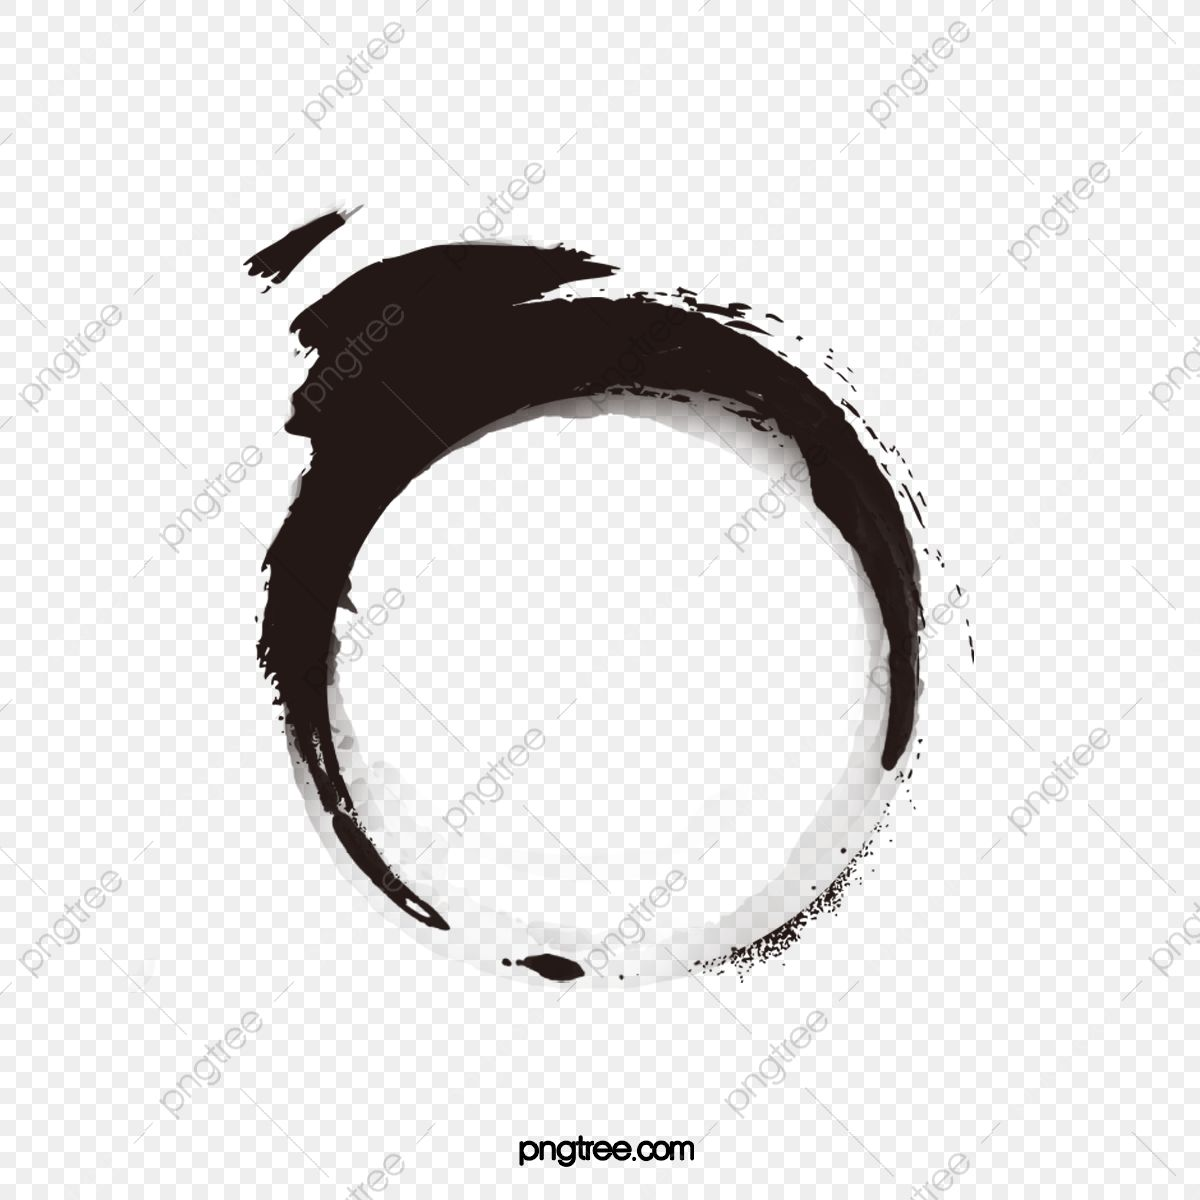 Chinese Ink Style Circle Chinese Clipart Circle Clipart Ink Marks Png Transparent Clipart Image And Psd File For Free Download Circle Clipart Chinese Ink Ink Brush